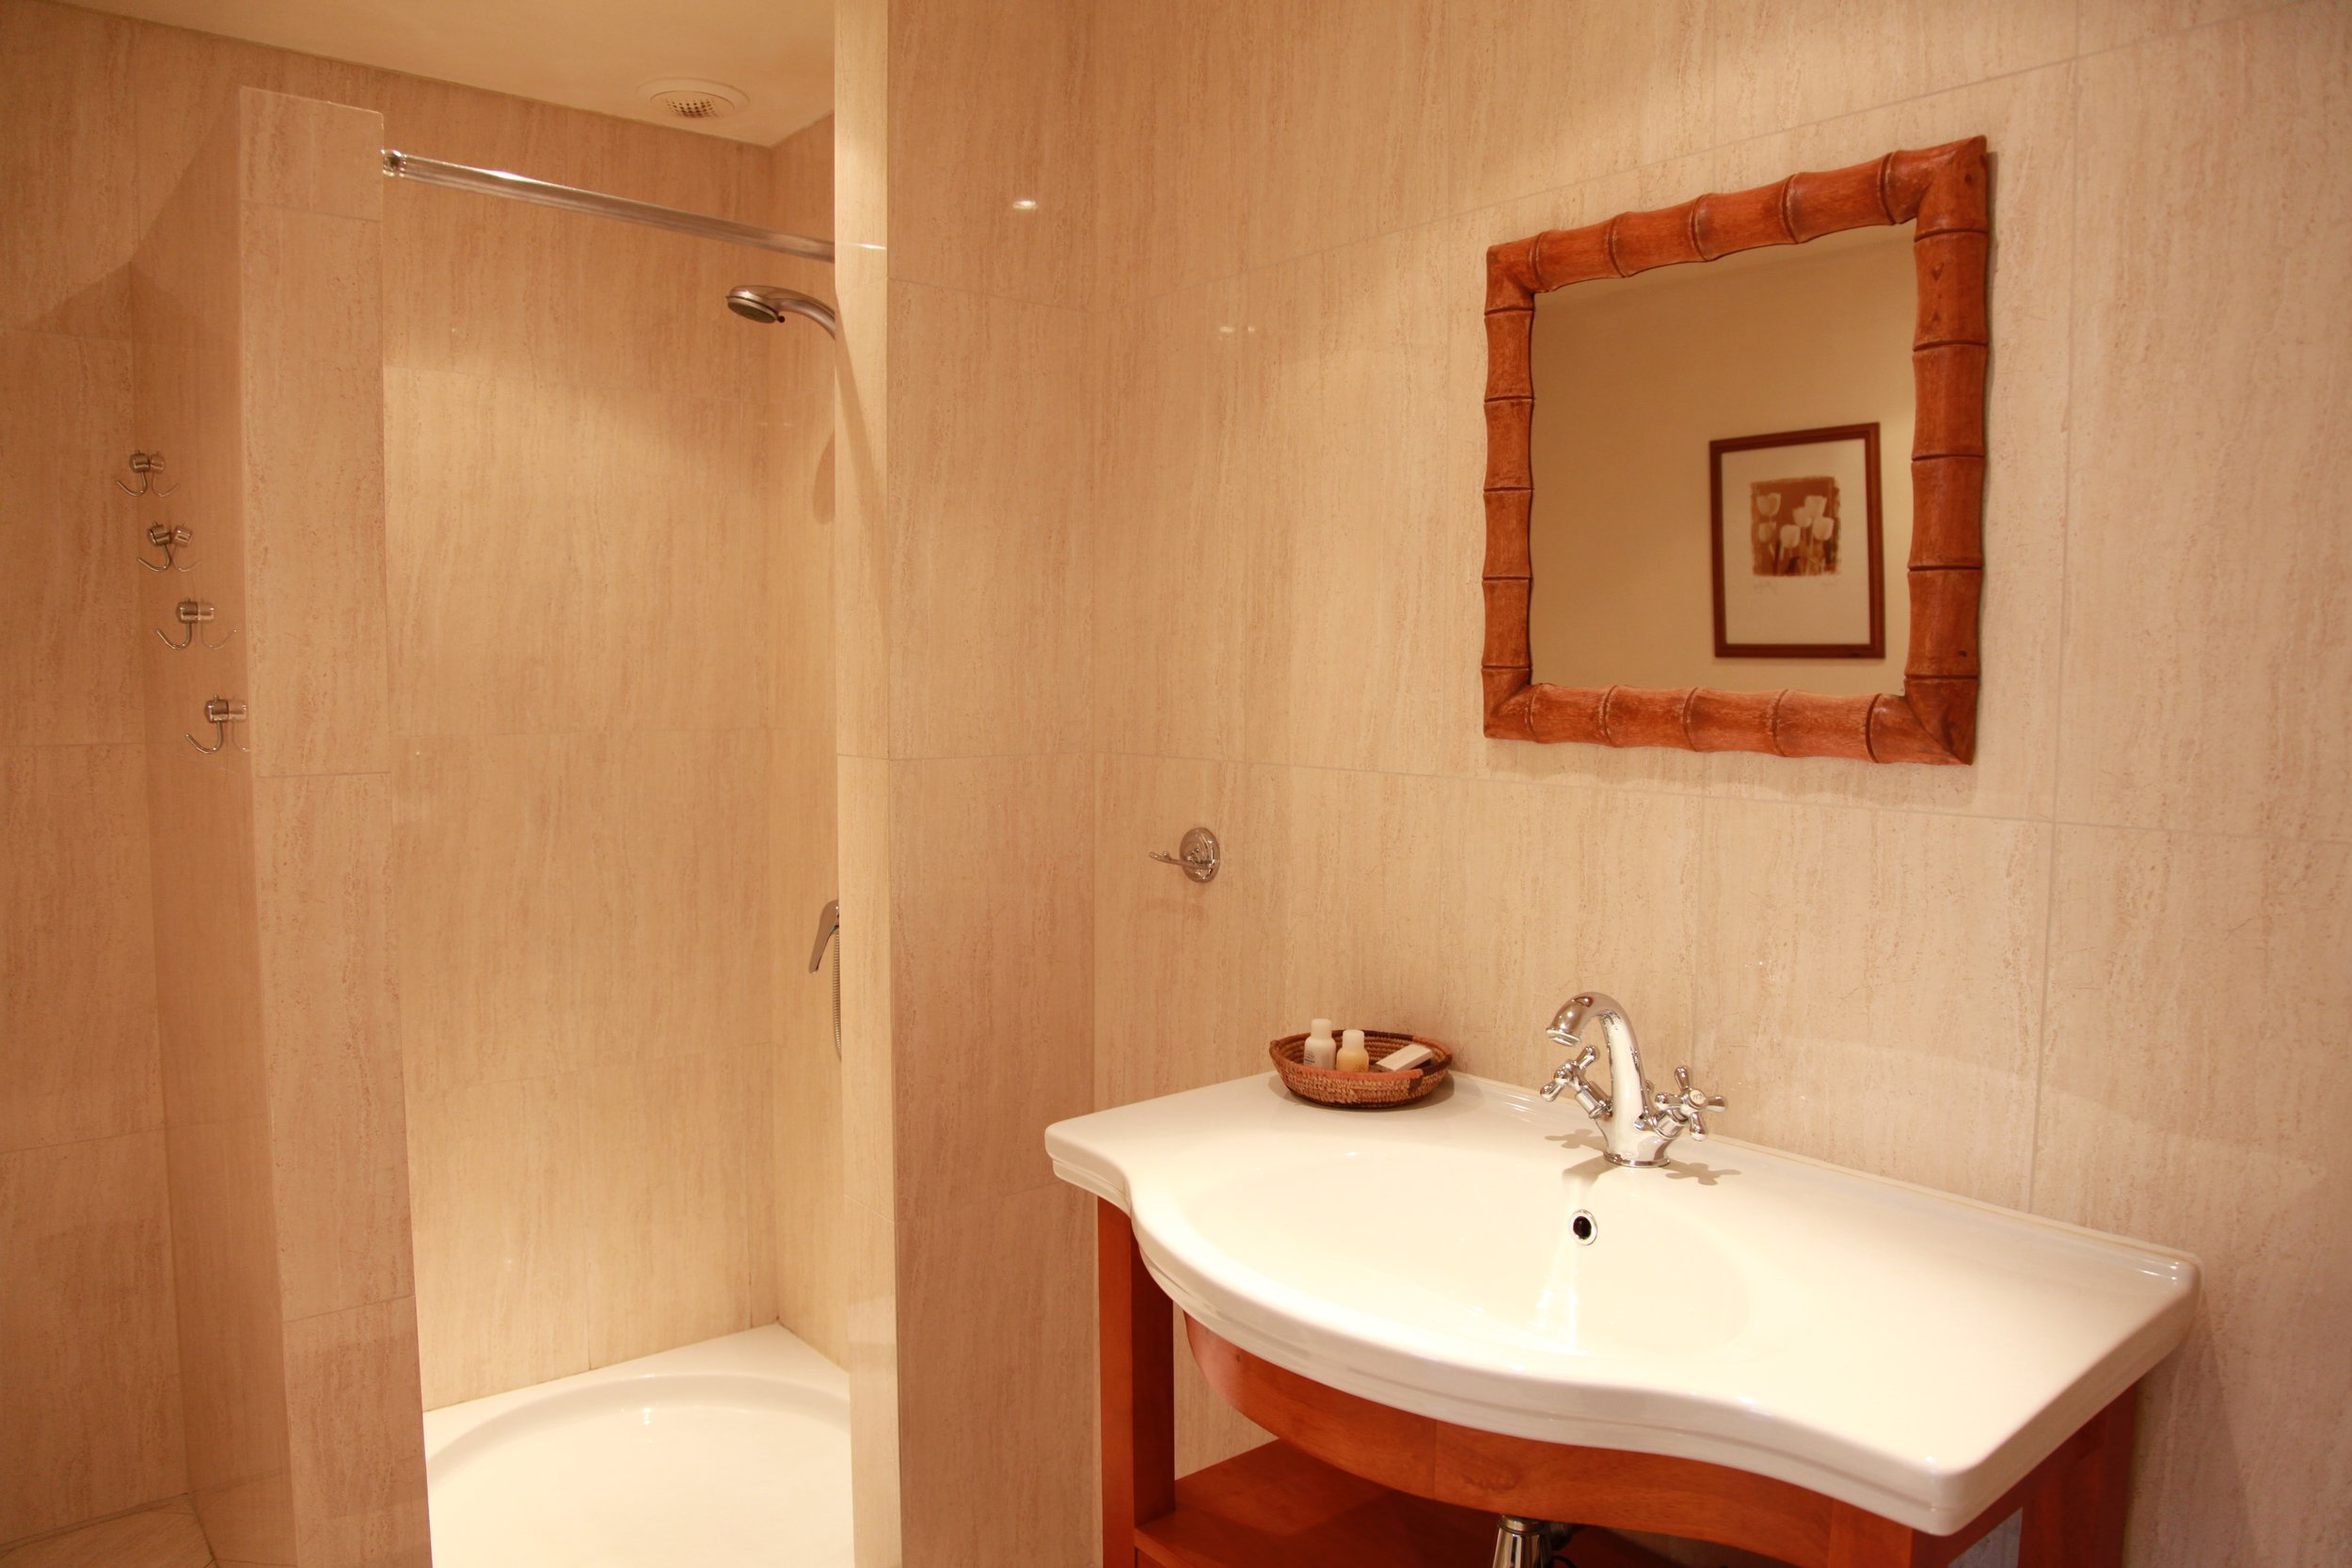 Bathroom 1 - With WC and shower